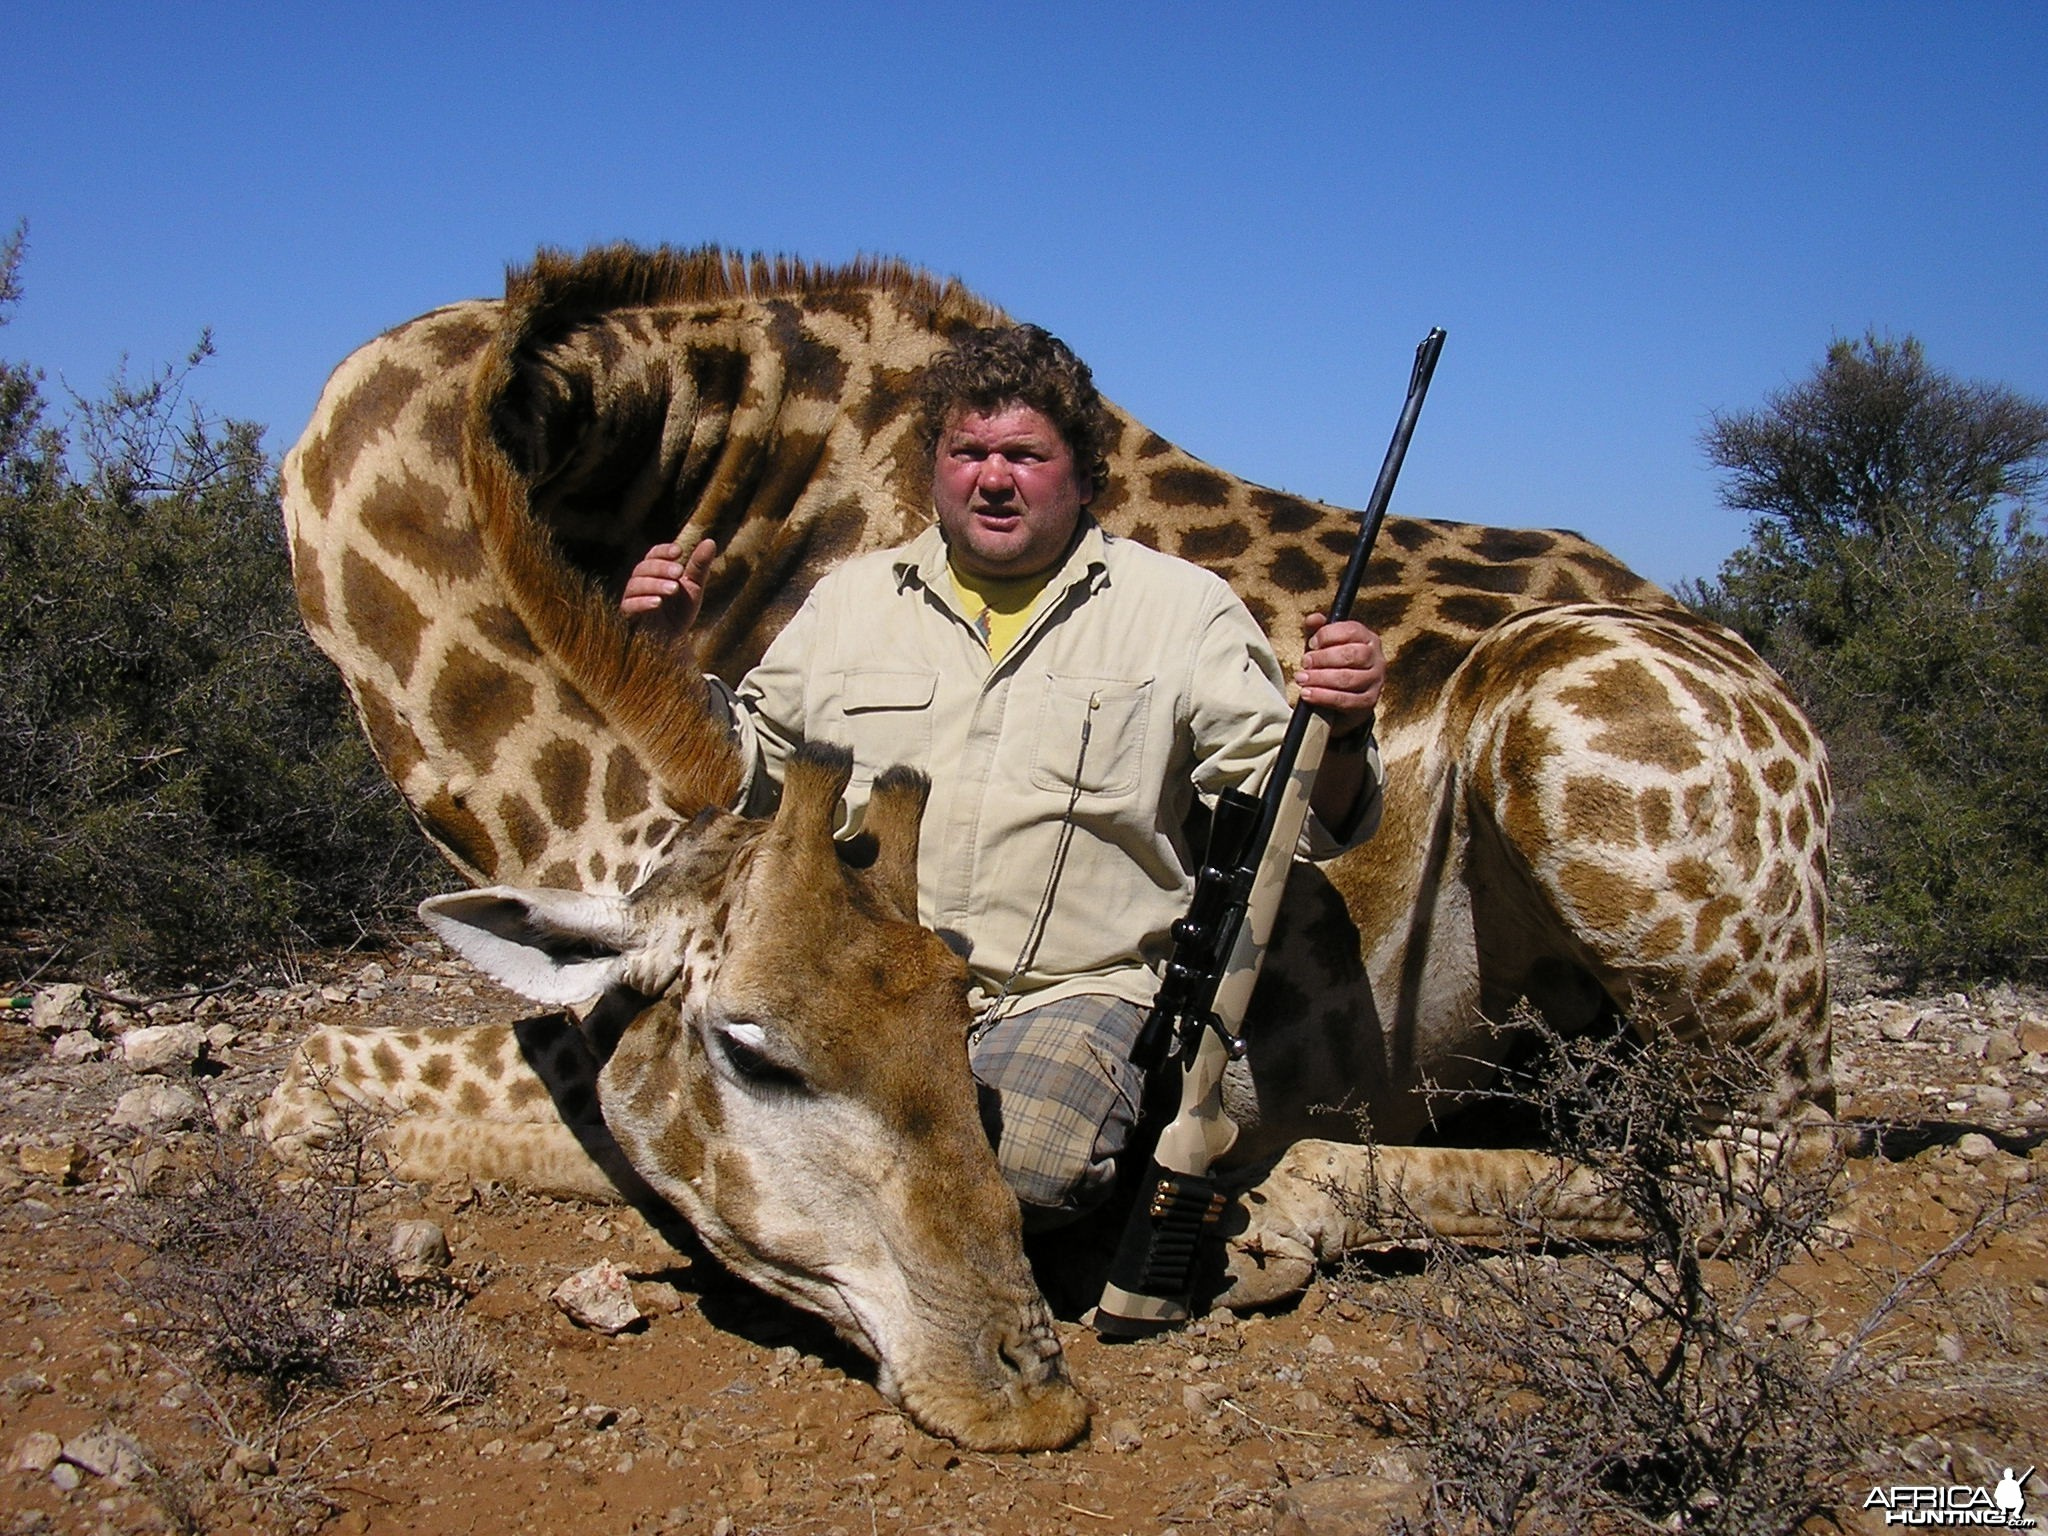 Hunting Giraffe with Wintershoek Johnny Vivier Safaris in SA